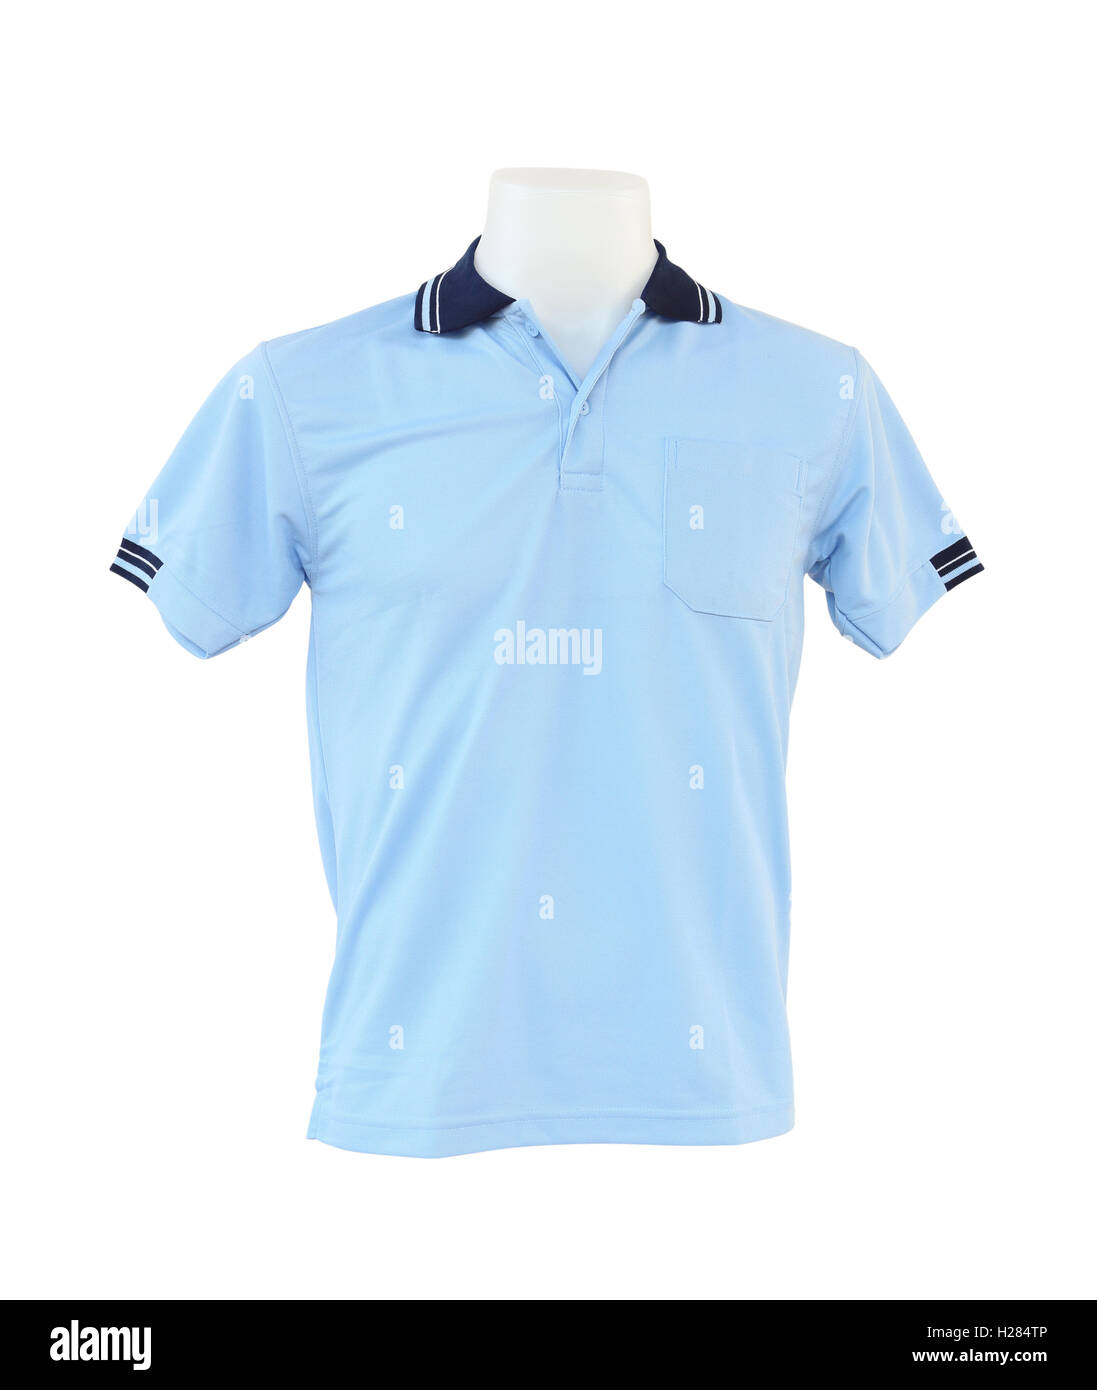 219ac20b31b2 Blue Polo T Shirt On Mannequin Stock Photos   Blue Polo T Shirt On ...